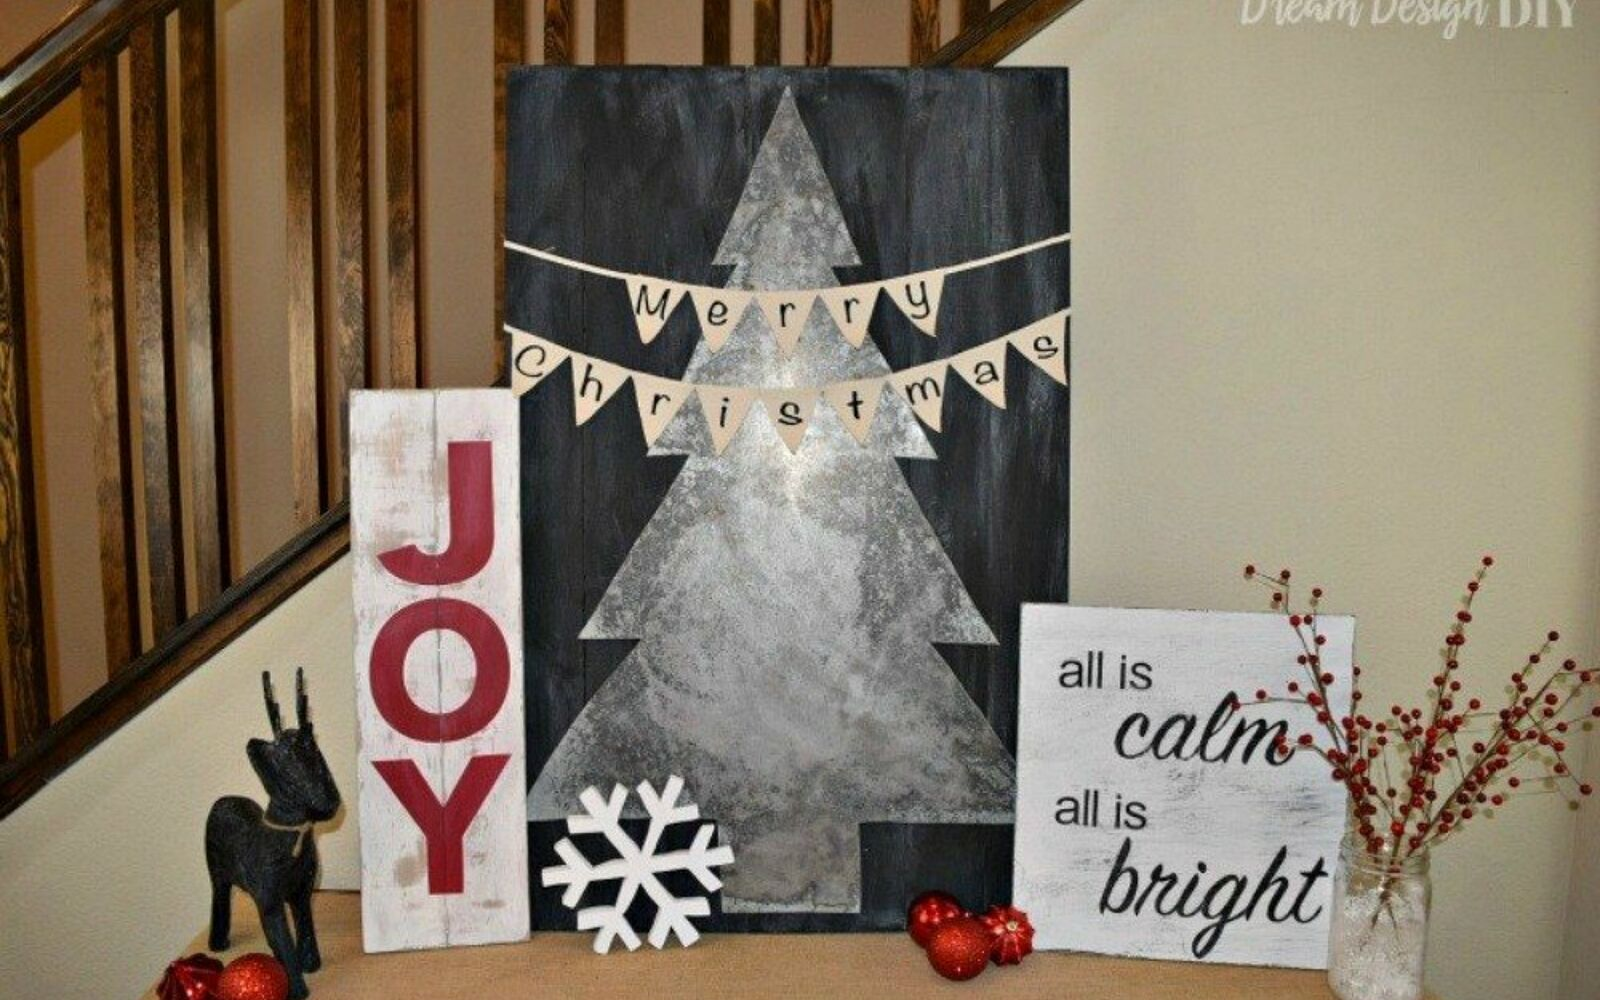 s 9 creative ideas that will change the way you see sheet metal, crafts, home decor, Add a Galvanized Christmas Tree to Your Decor